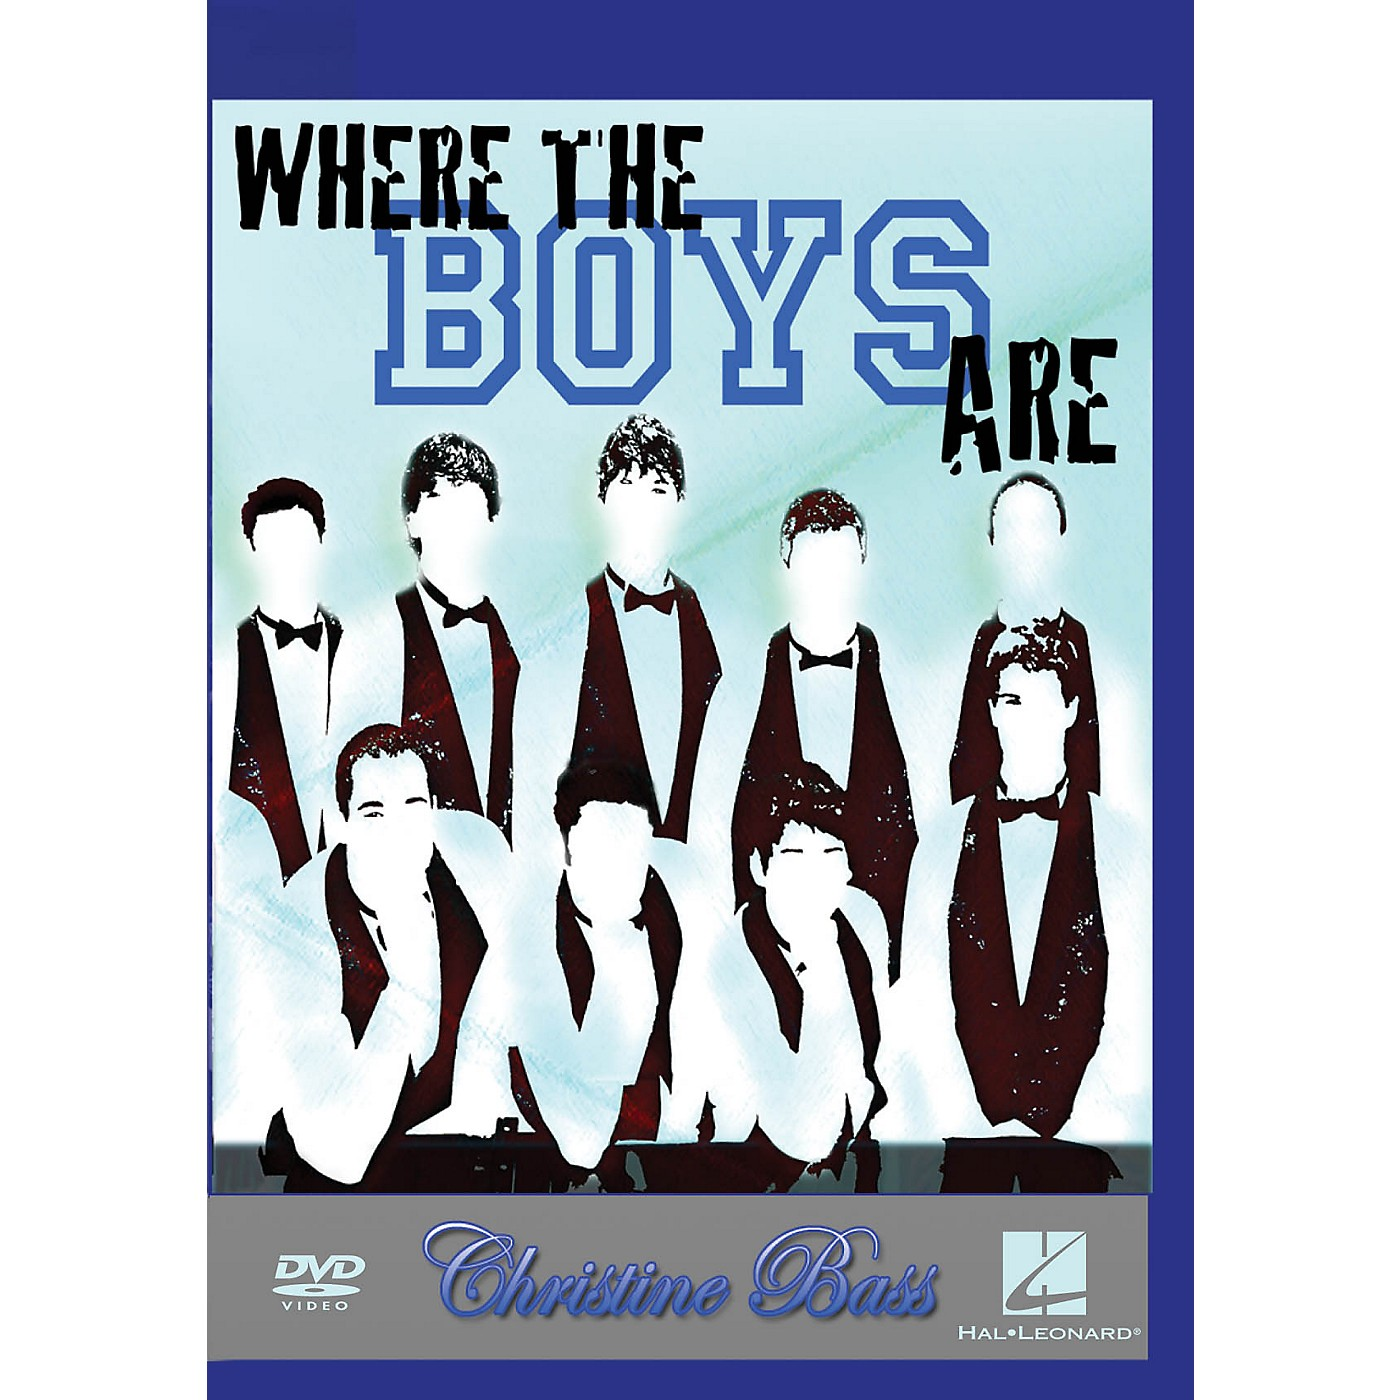 Hal Leonard Where the Boys Are (Recruiting, Engaging, and Maintaining Those Tenors and Basses) DVD thumbnail